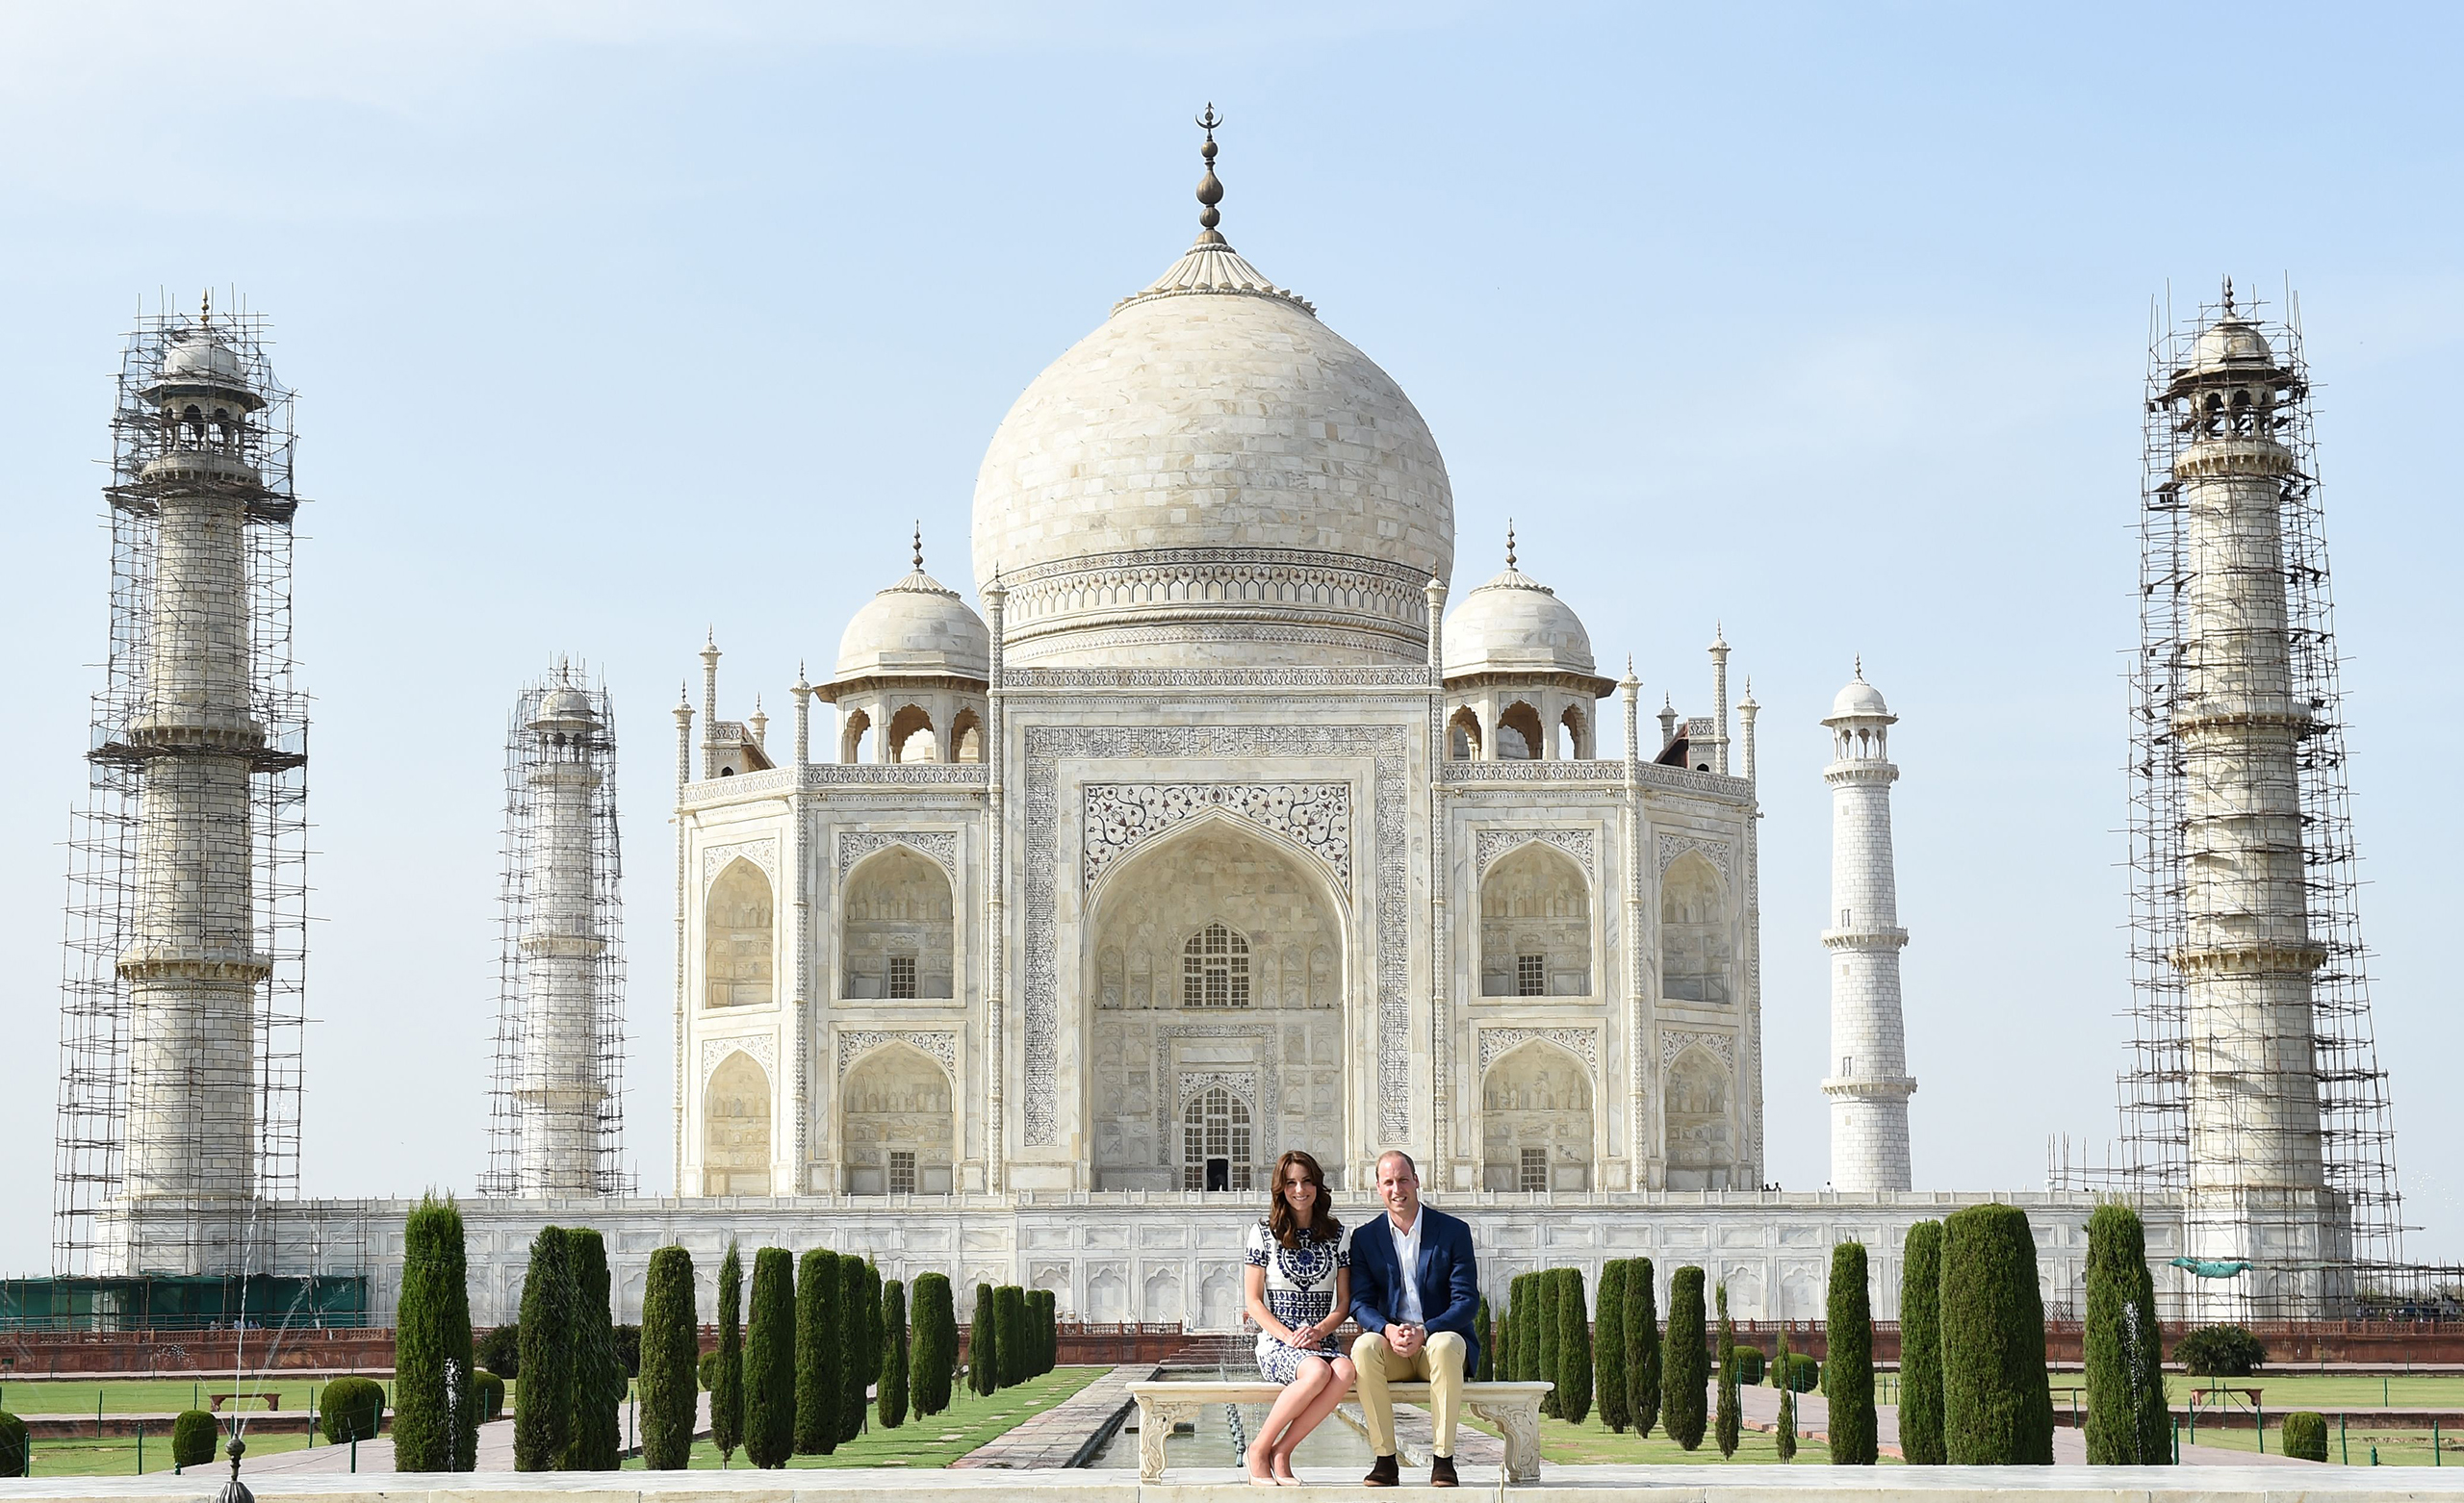 Prince William, Duke of Cambridge, and Catherine, Duchess of Cambridge, pose at The Taj Mahal in Agra, India, April 16, 2016.